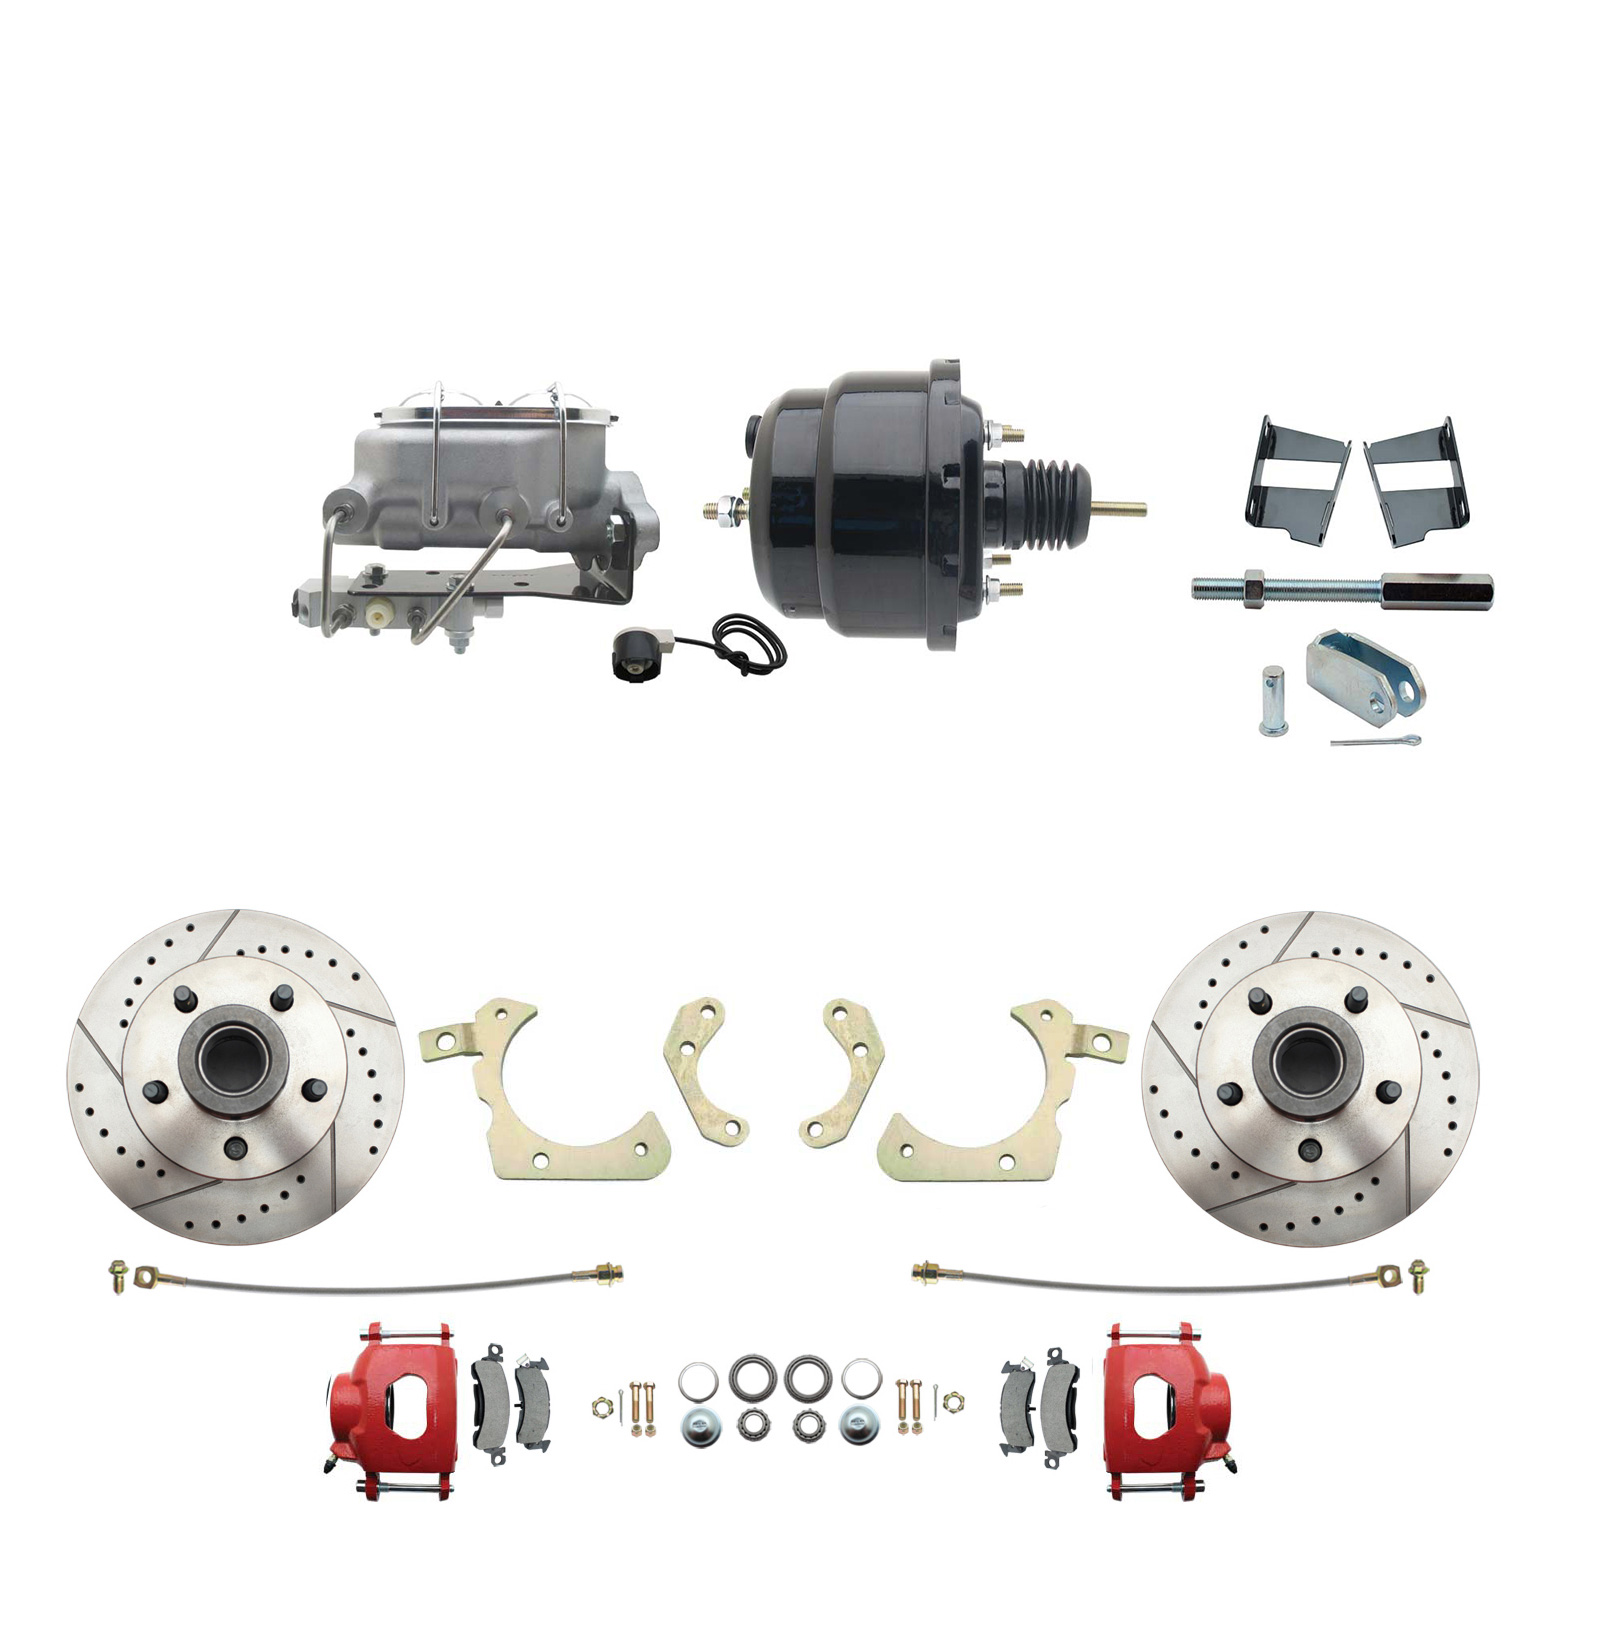 1959-1964 GM Full Size Front Disc Brake Kit Red Powder Coated Calipers Drilled/Slotted Rotors (Impala, Bel Air, Biscayne) & 8 Dual Powder Coated Black Booster Conversion Kit W/ Aluminum Master Cylinder Bottom Mount Disc/ Drum